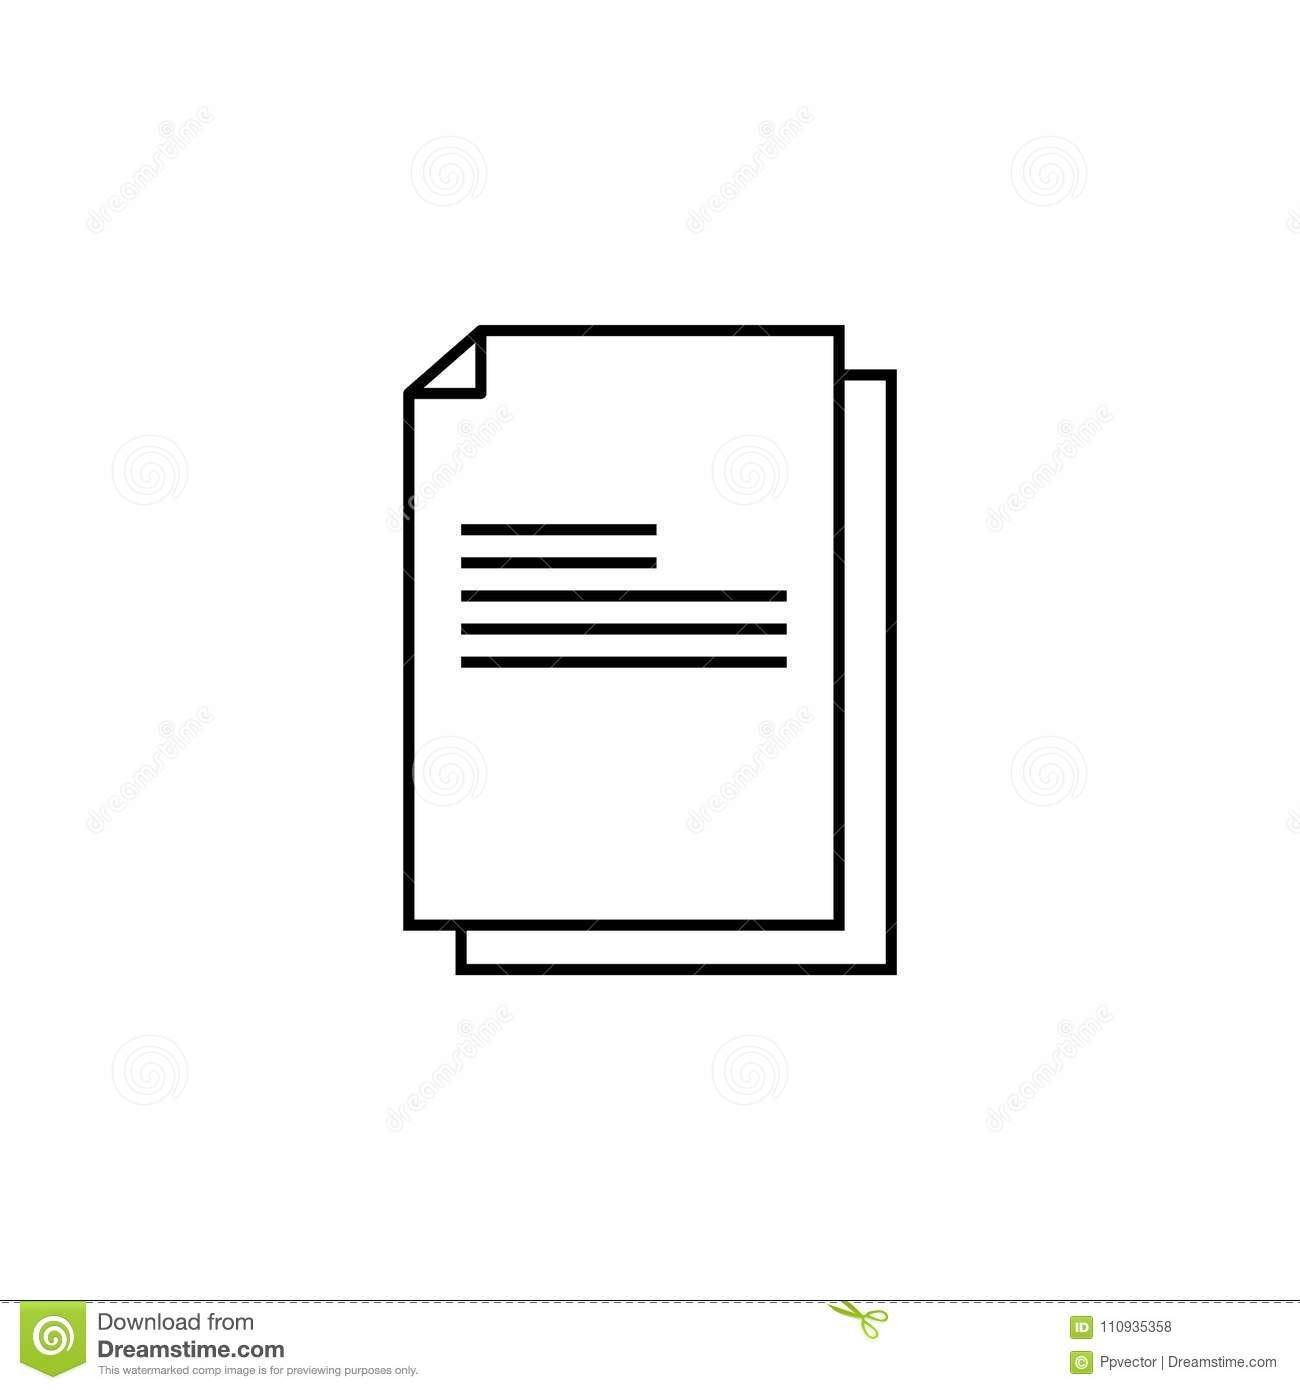 Files documents, data icon. vector